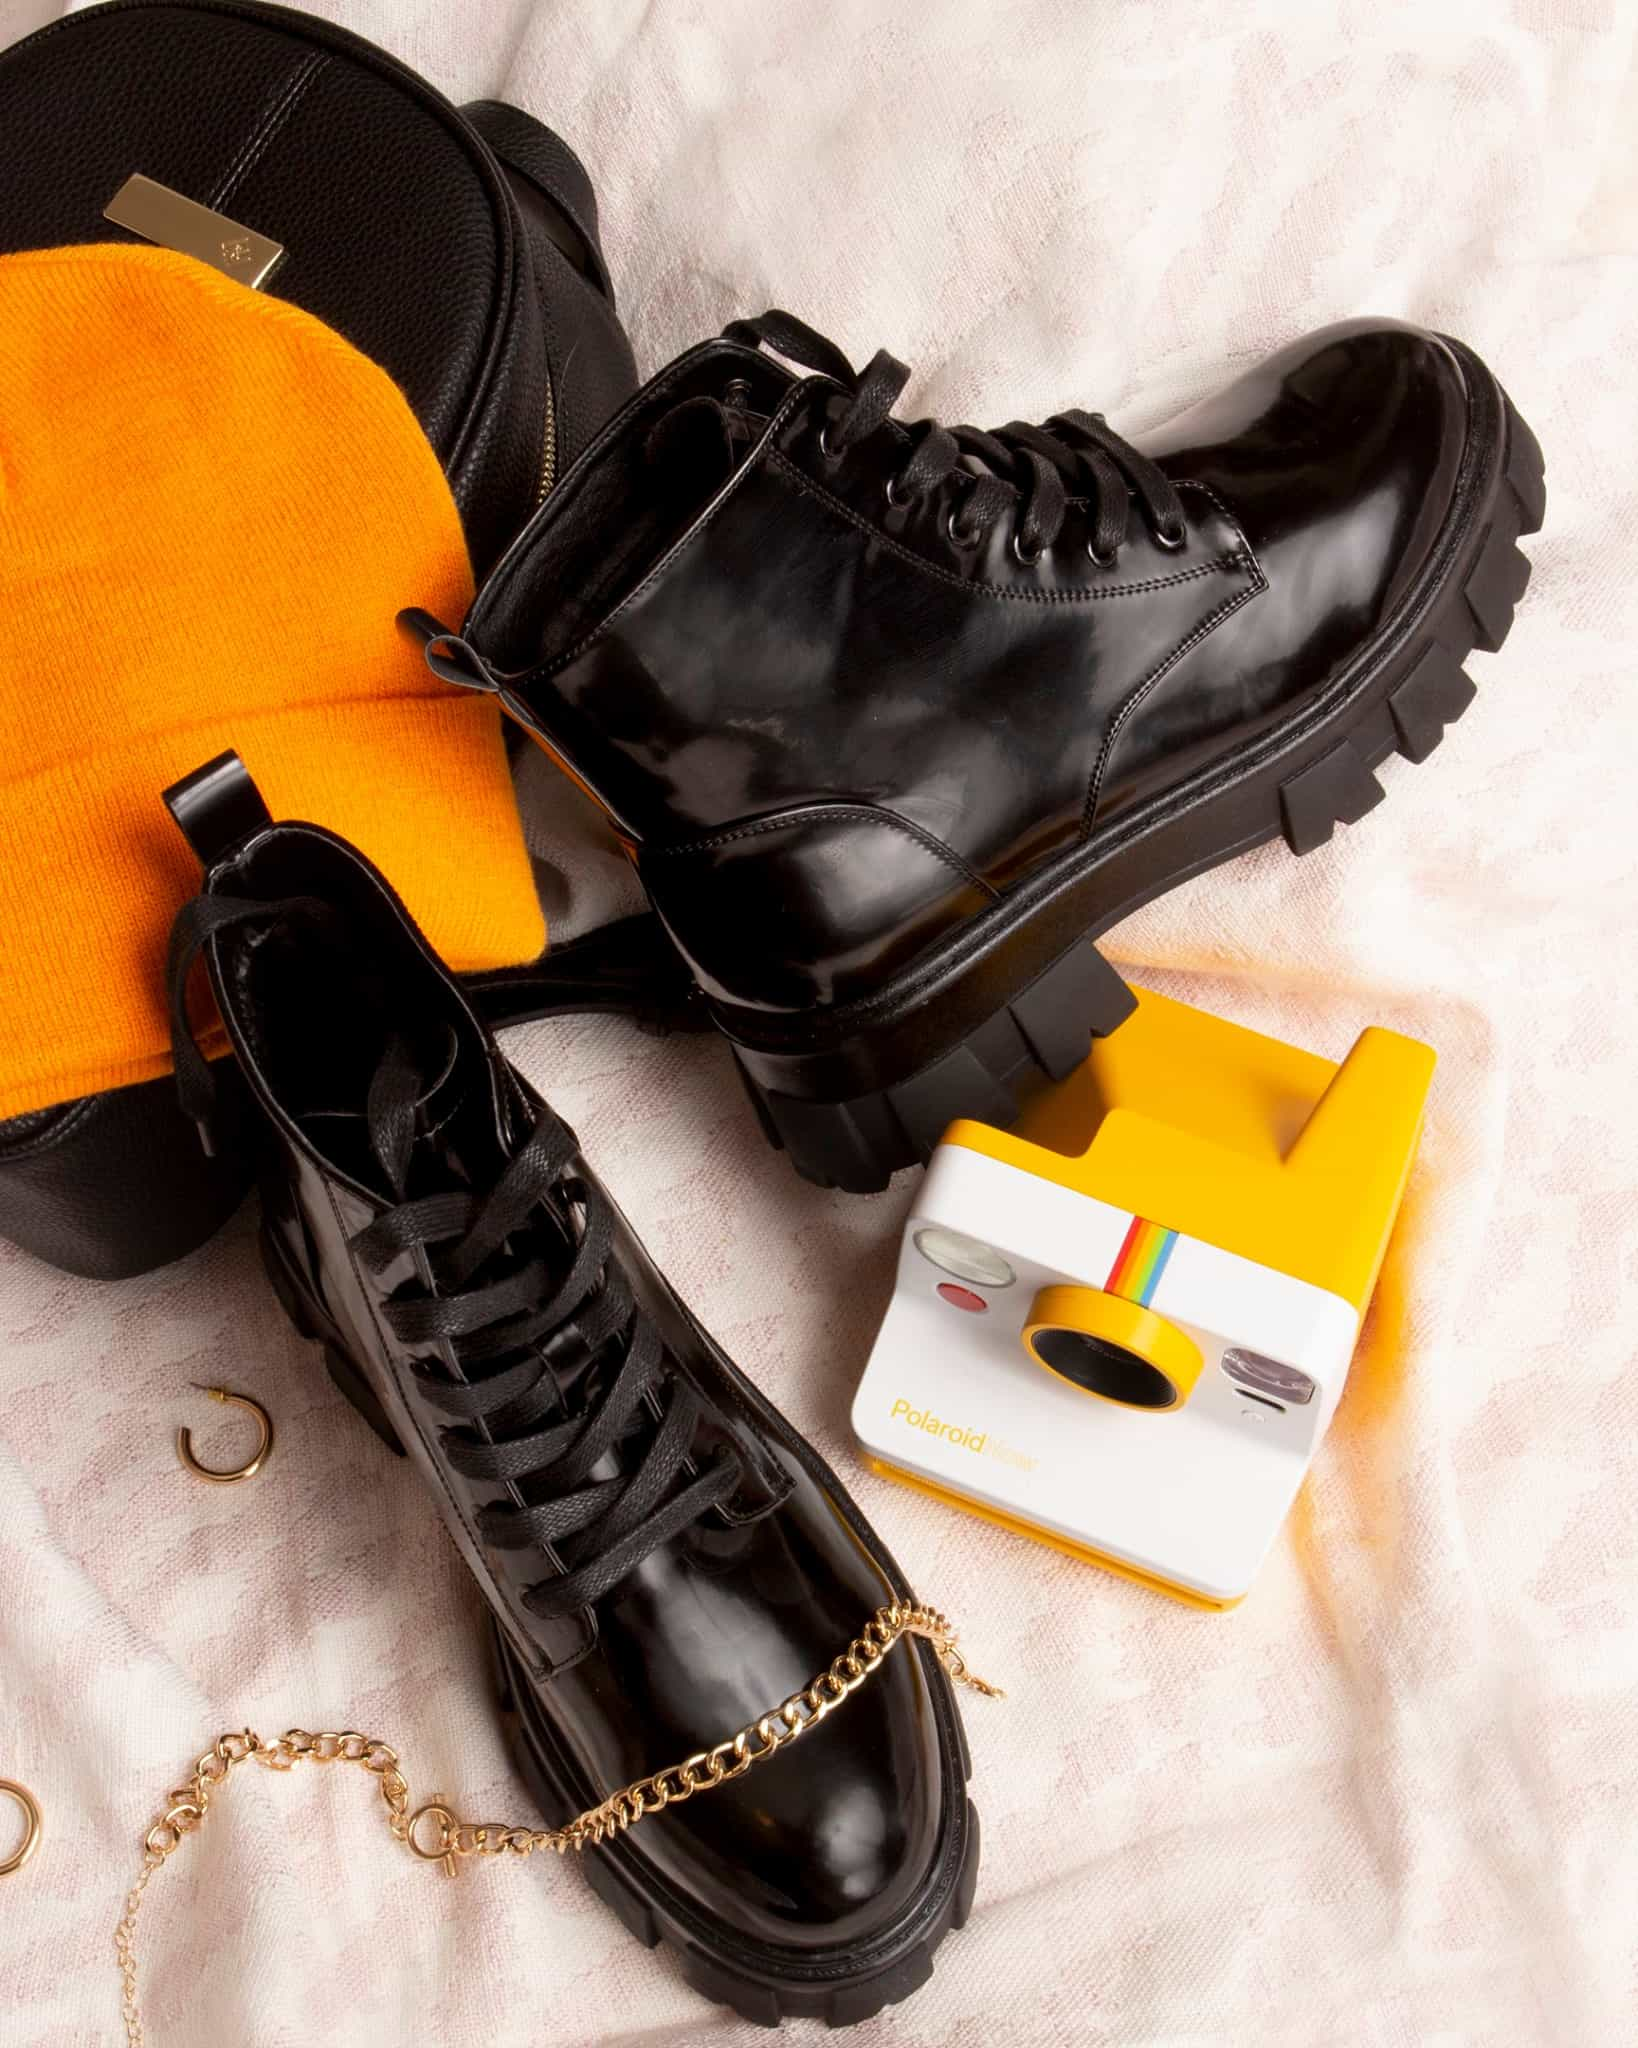 EcoLux☆Lifestyle: From Sparkly Heels to Uber-Warm Boots, 'Call it Spring' Launches Holiday Collection